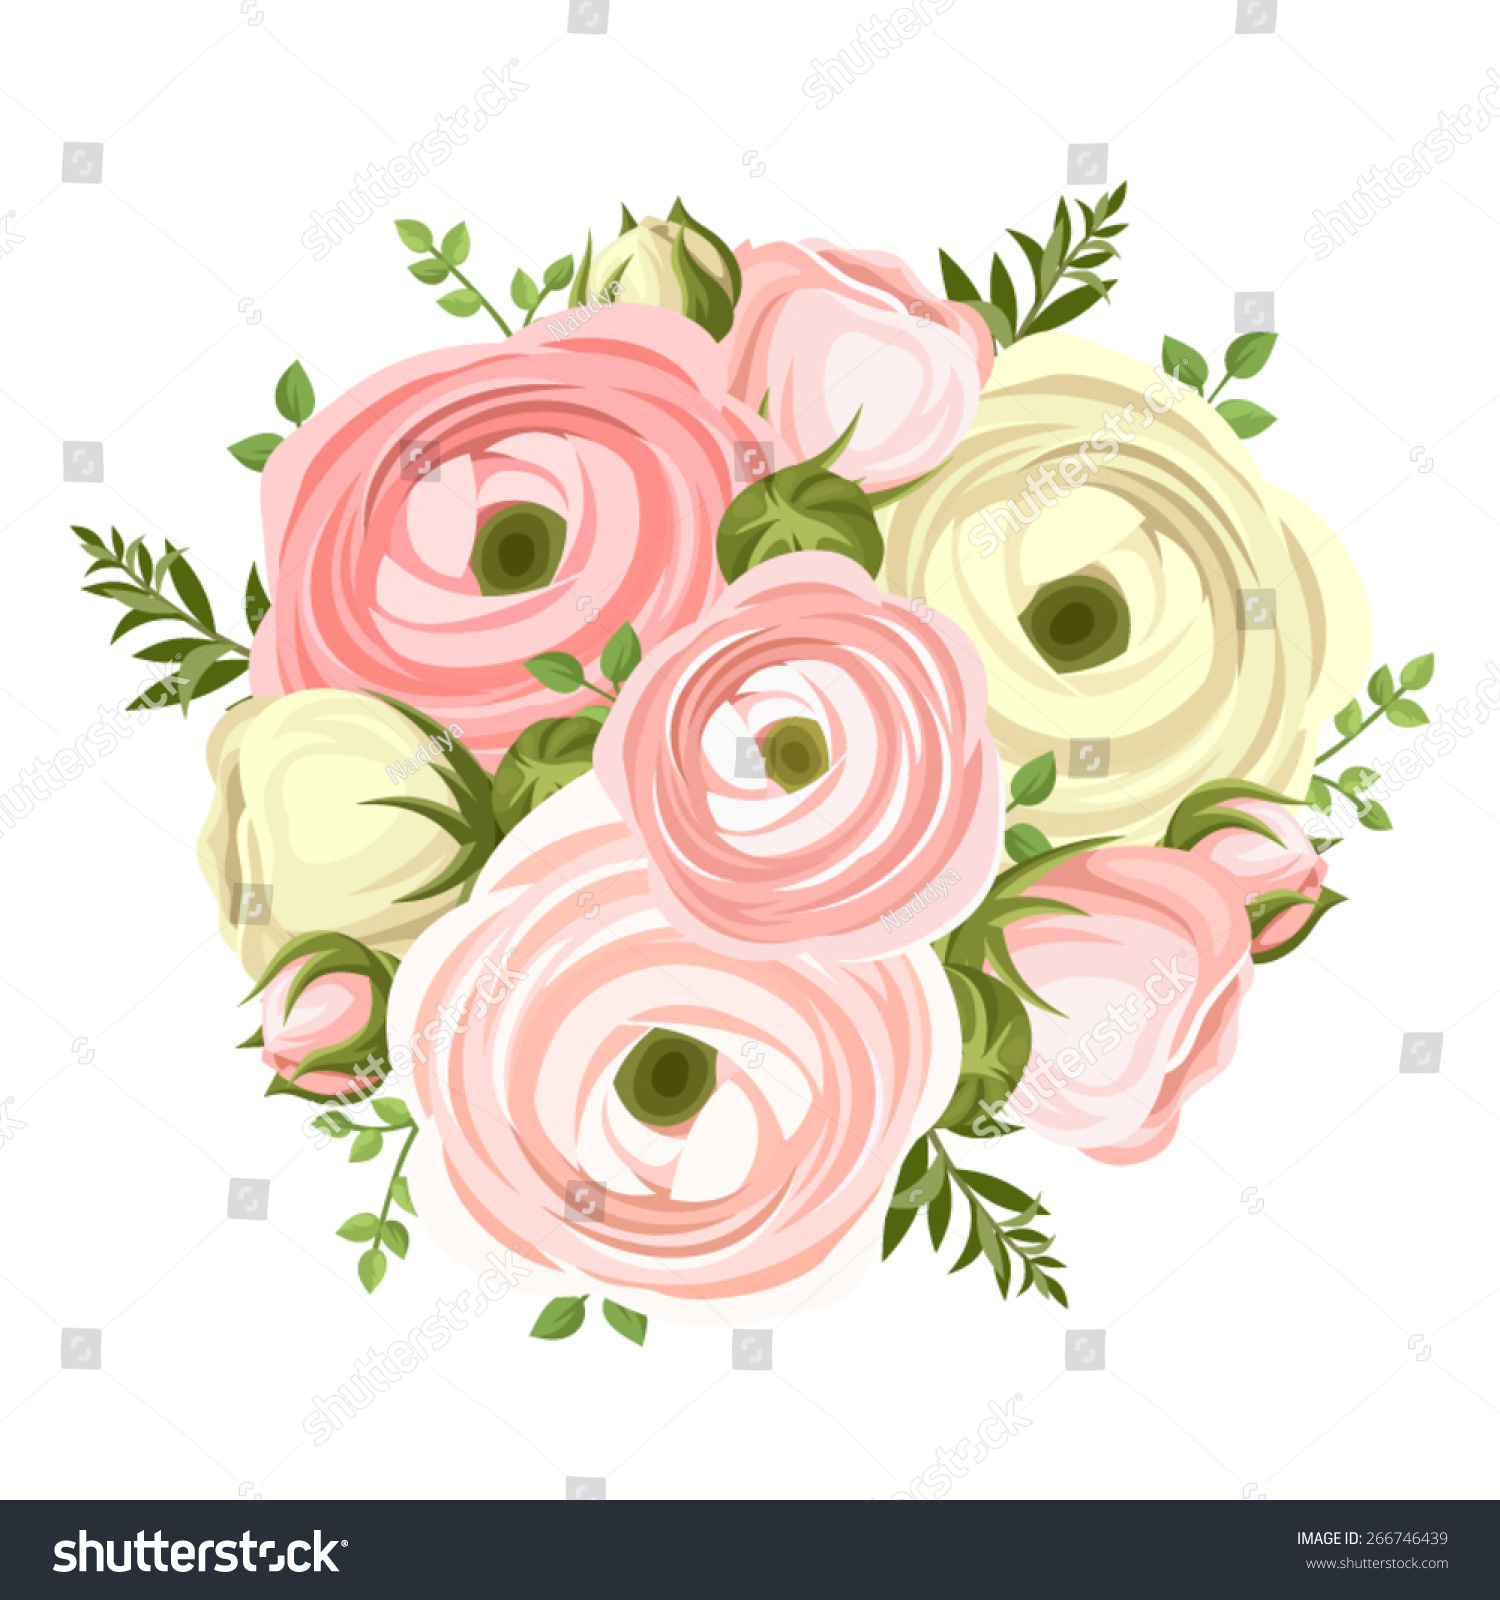 Vector Bouquet Of Pink And White Ranunculus Flowers On A White